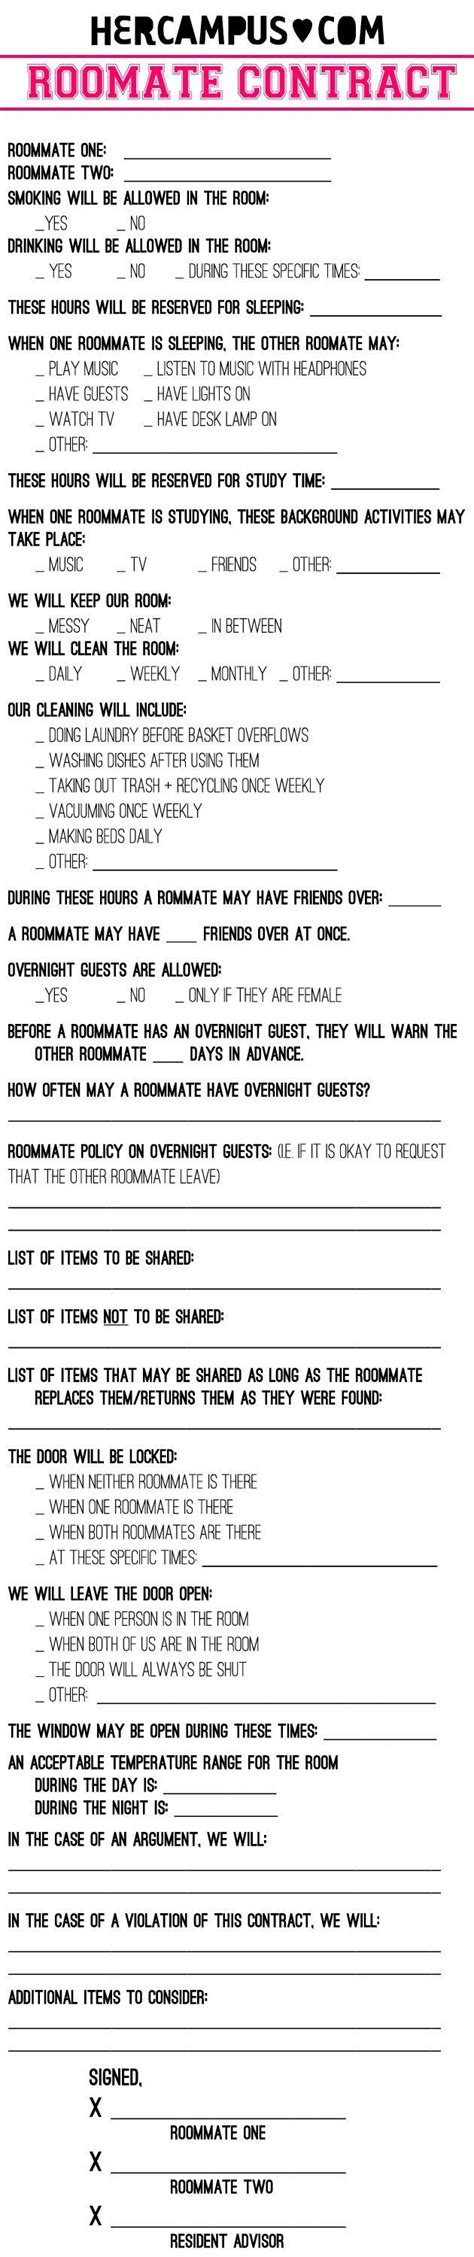 25 Best Ideas About Roommate Rules On Pinterest Flatmate Rooms Roommate Ideas And Roommates College Roommate Contract Template